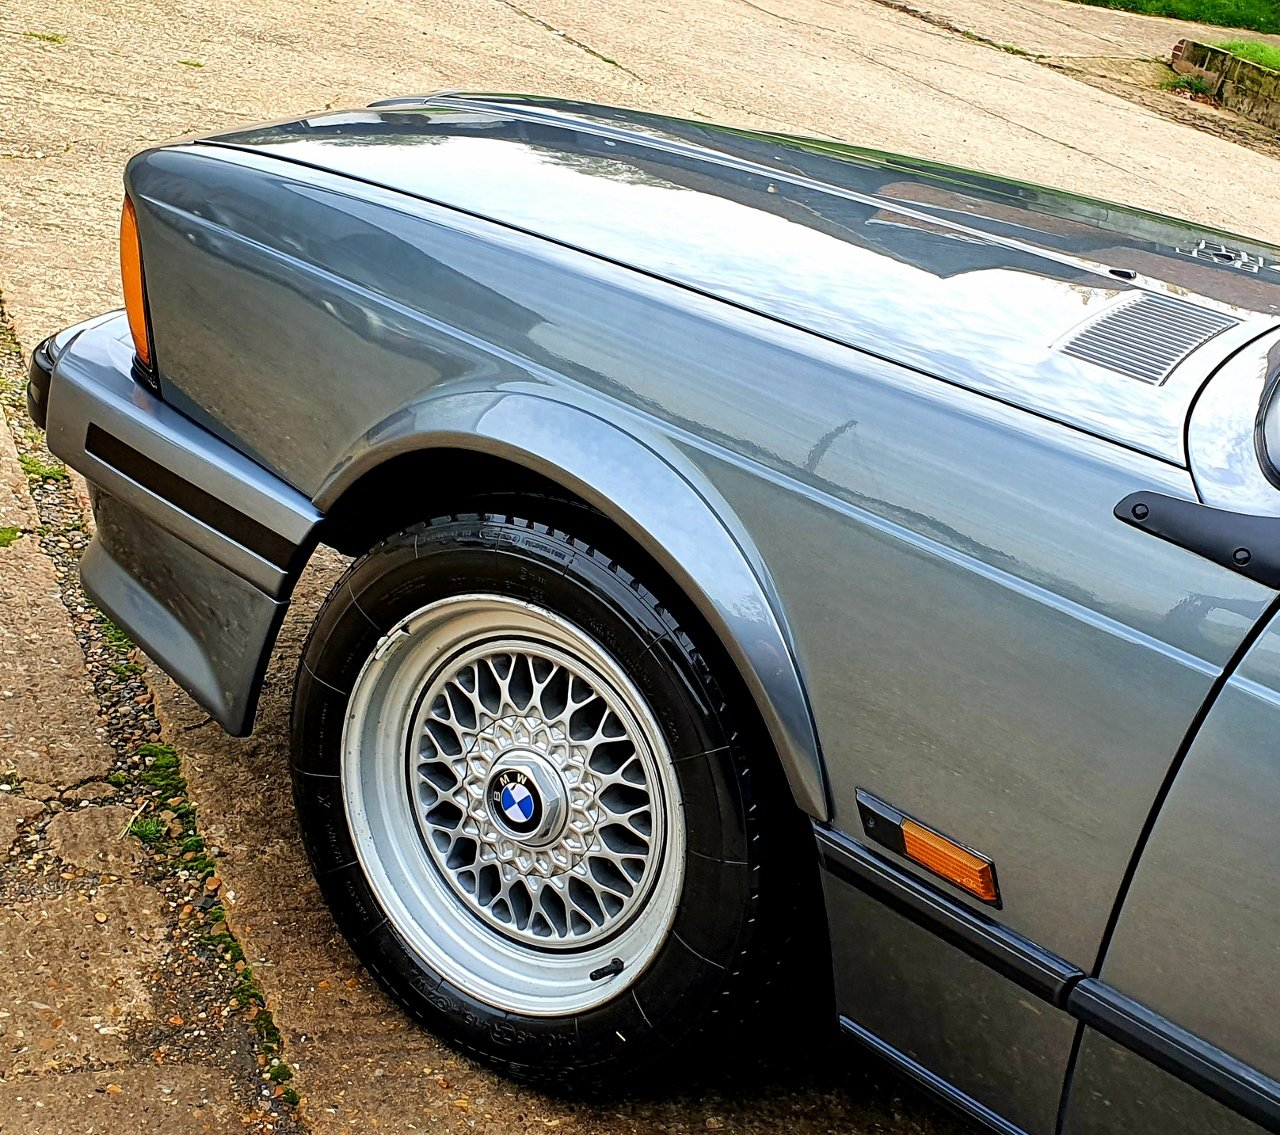 1989 Only 65,000 Miles - Stunning BMW E24 635 CSI HIGHLINE For Sale (picture 6 of 10)